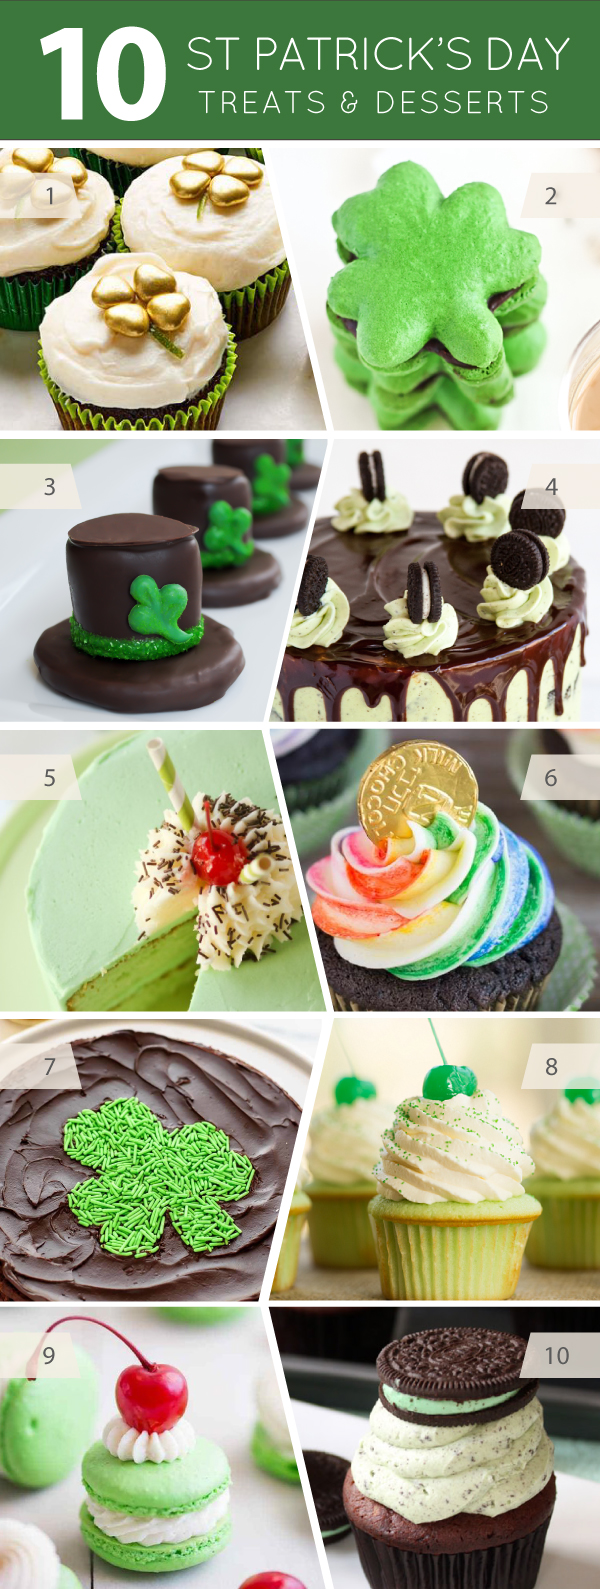 10 St. Patrick's Day Treats and Desserts | on TheCakeBlog.com